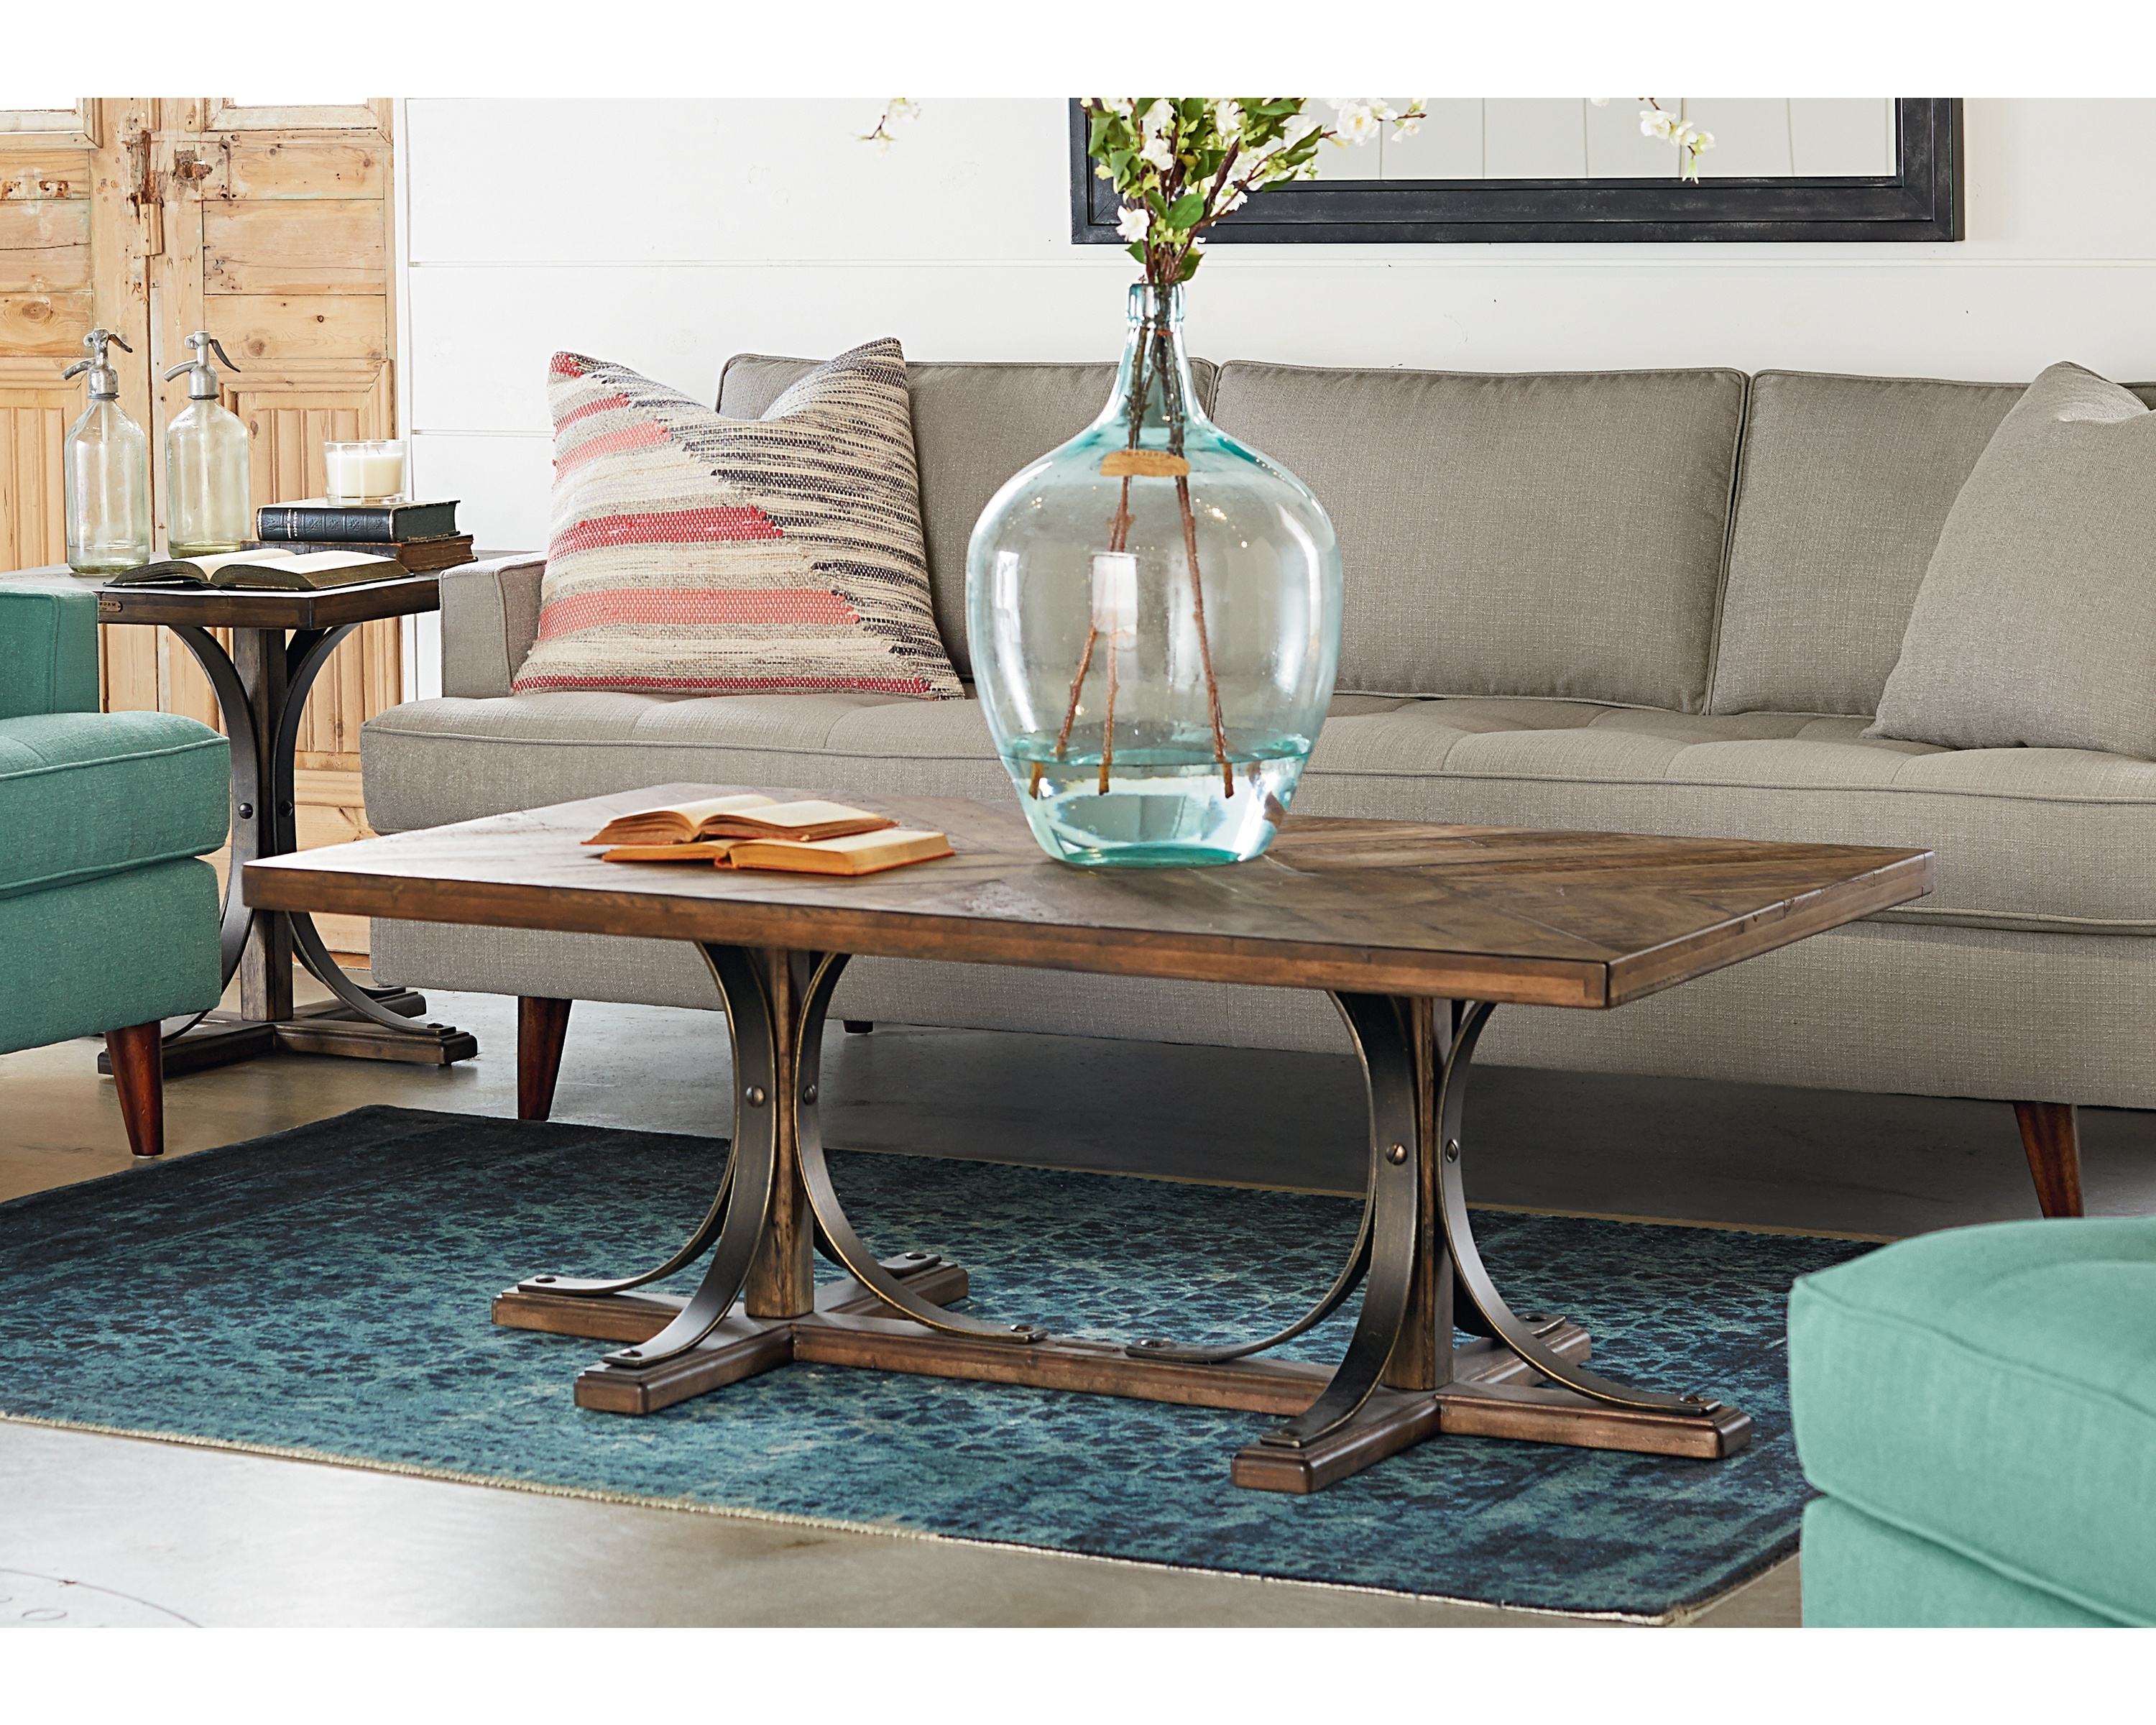 2017 Iron Trestle Coffee Table – Magnolia Home Inside Magnolia Home Shop Floor Dining Tables With Iron Trestle (View 1 of 25)